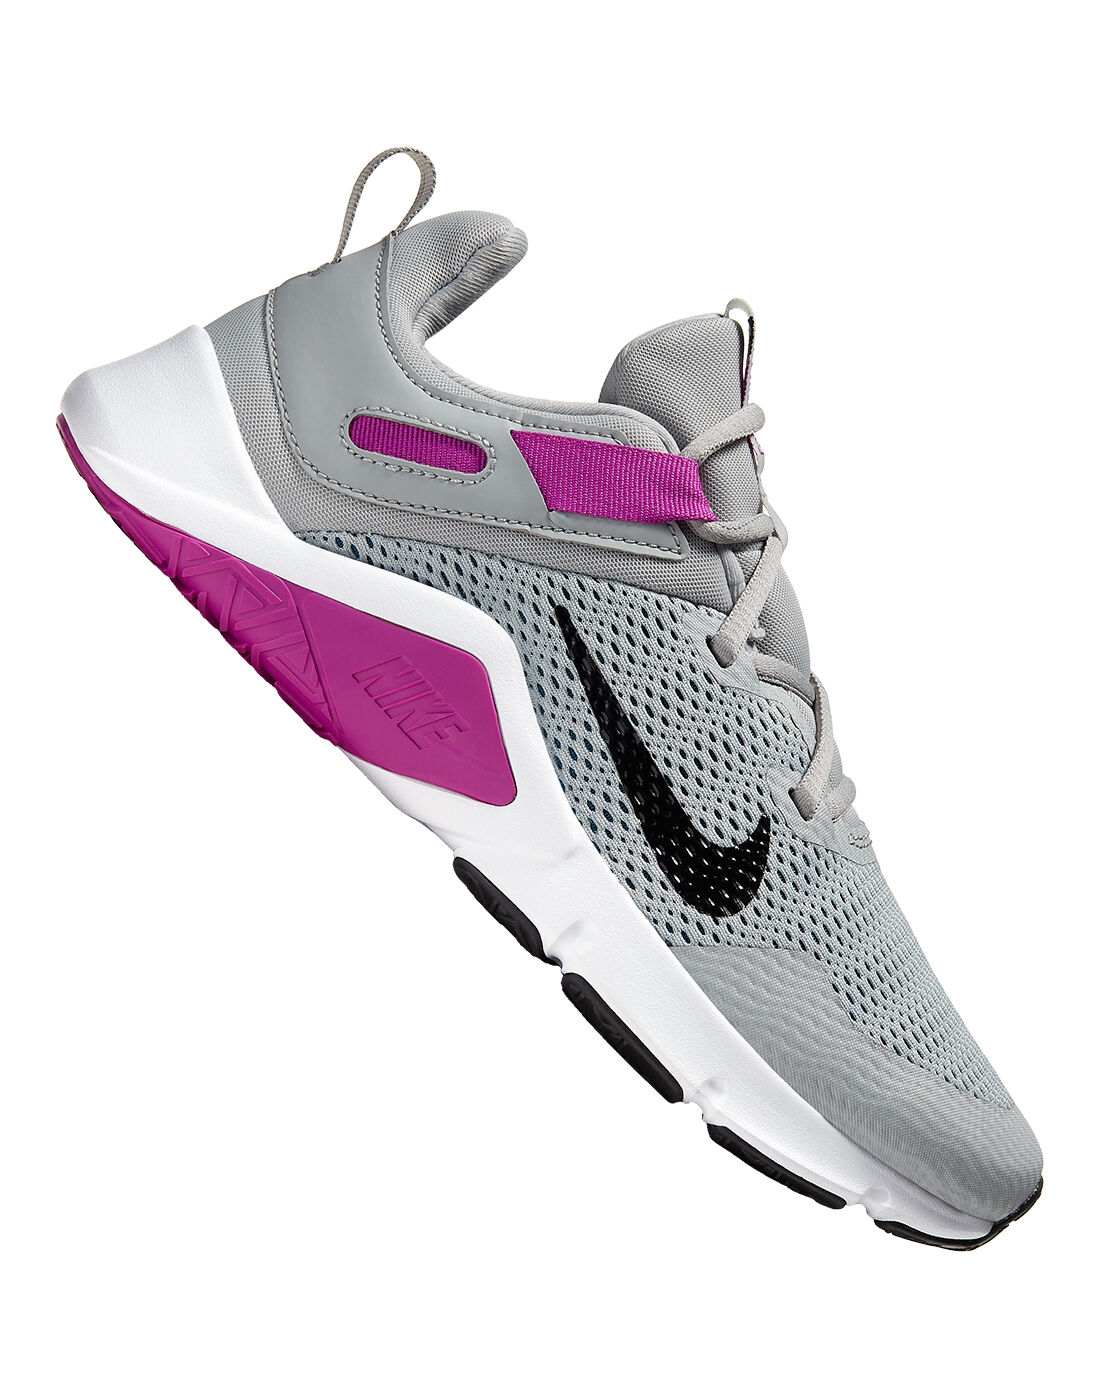 Size 5 Legend Athletic Girls Pink and White Shoes